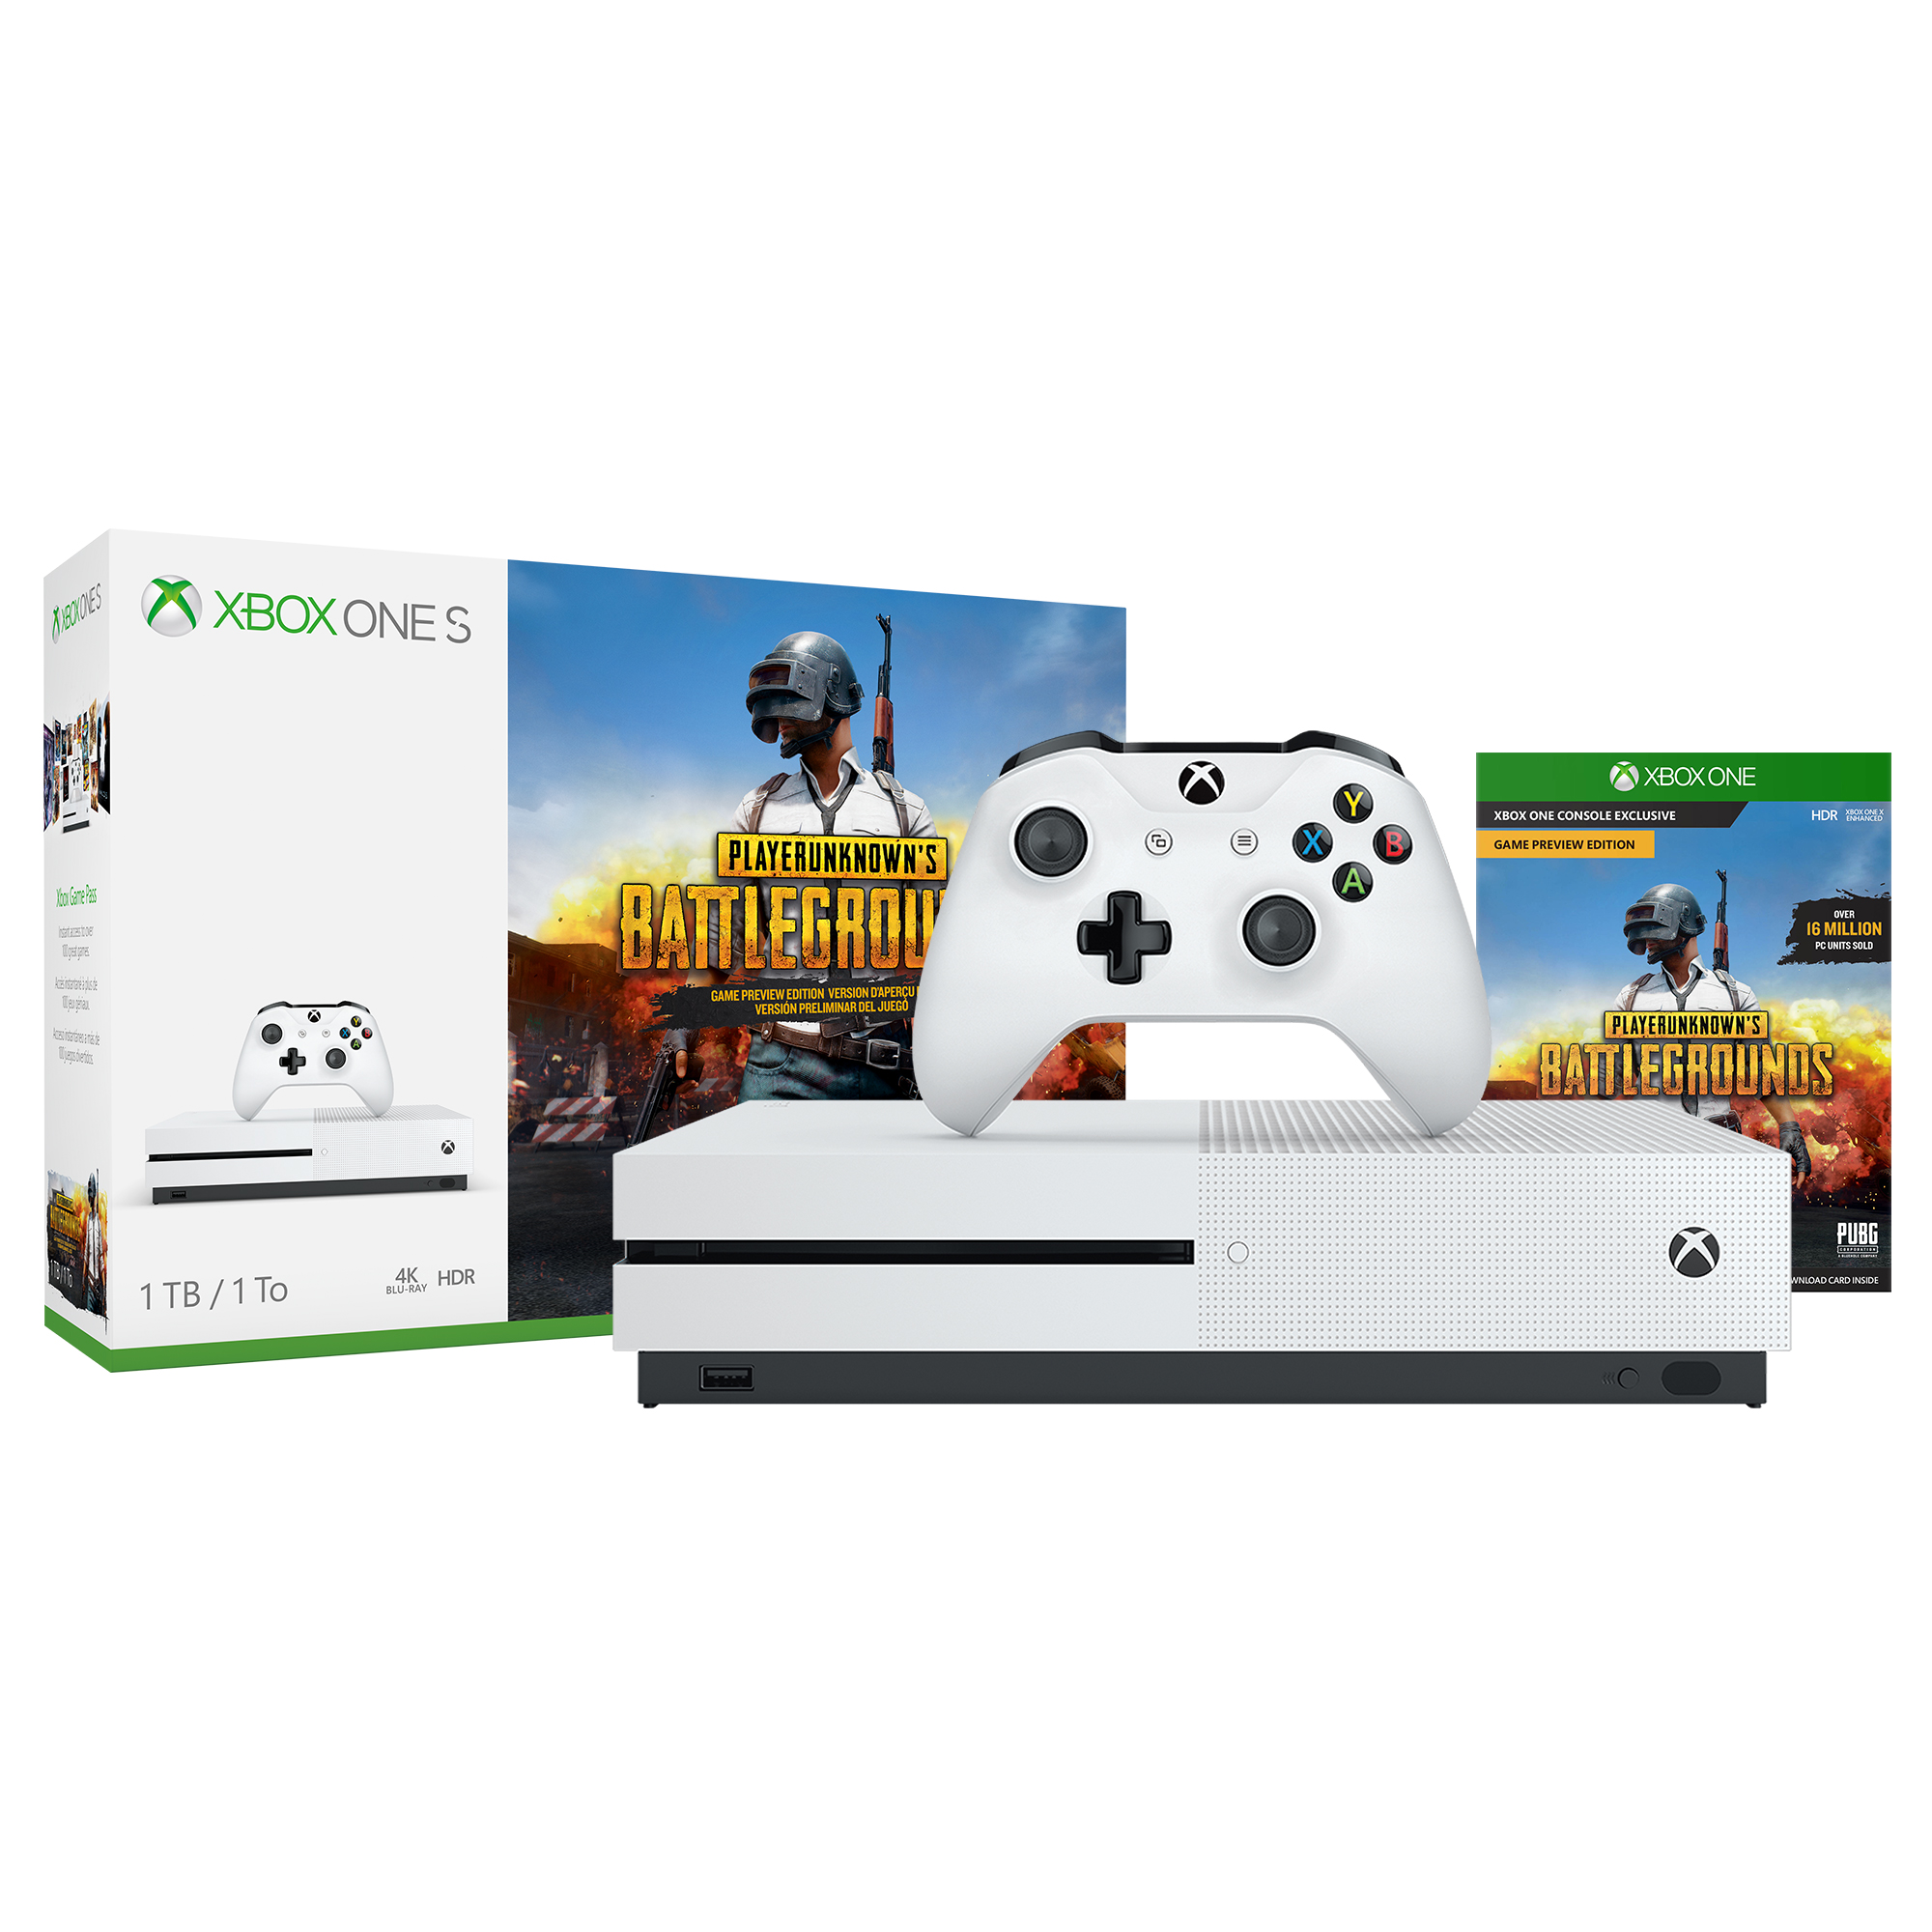 Microsoft Xbox One S 1TB PLAYERUNKNOWN'S BATTLEGROUNDS Bundle, 234-00301